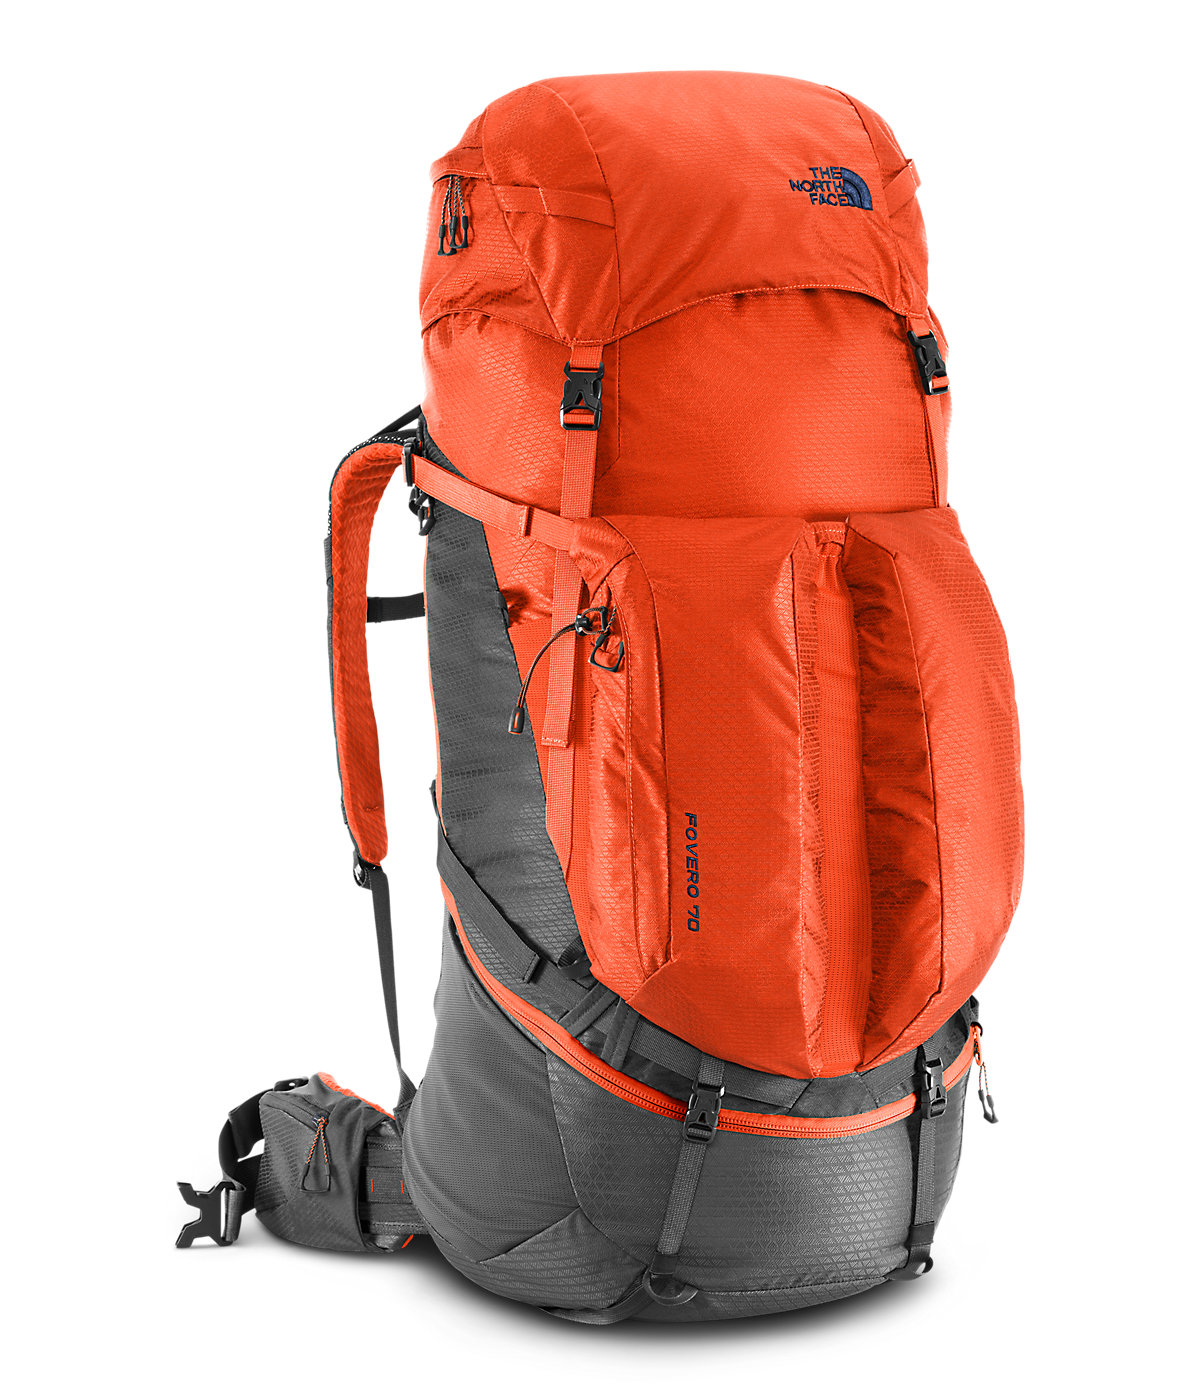 bc2eb3d54 Fovero 70 in 2019 | Products | Backpacks, Camping gear, Best ...